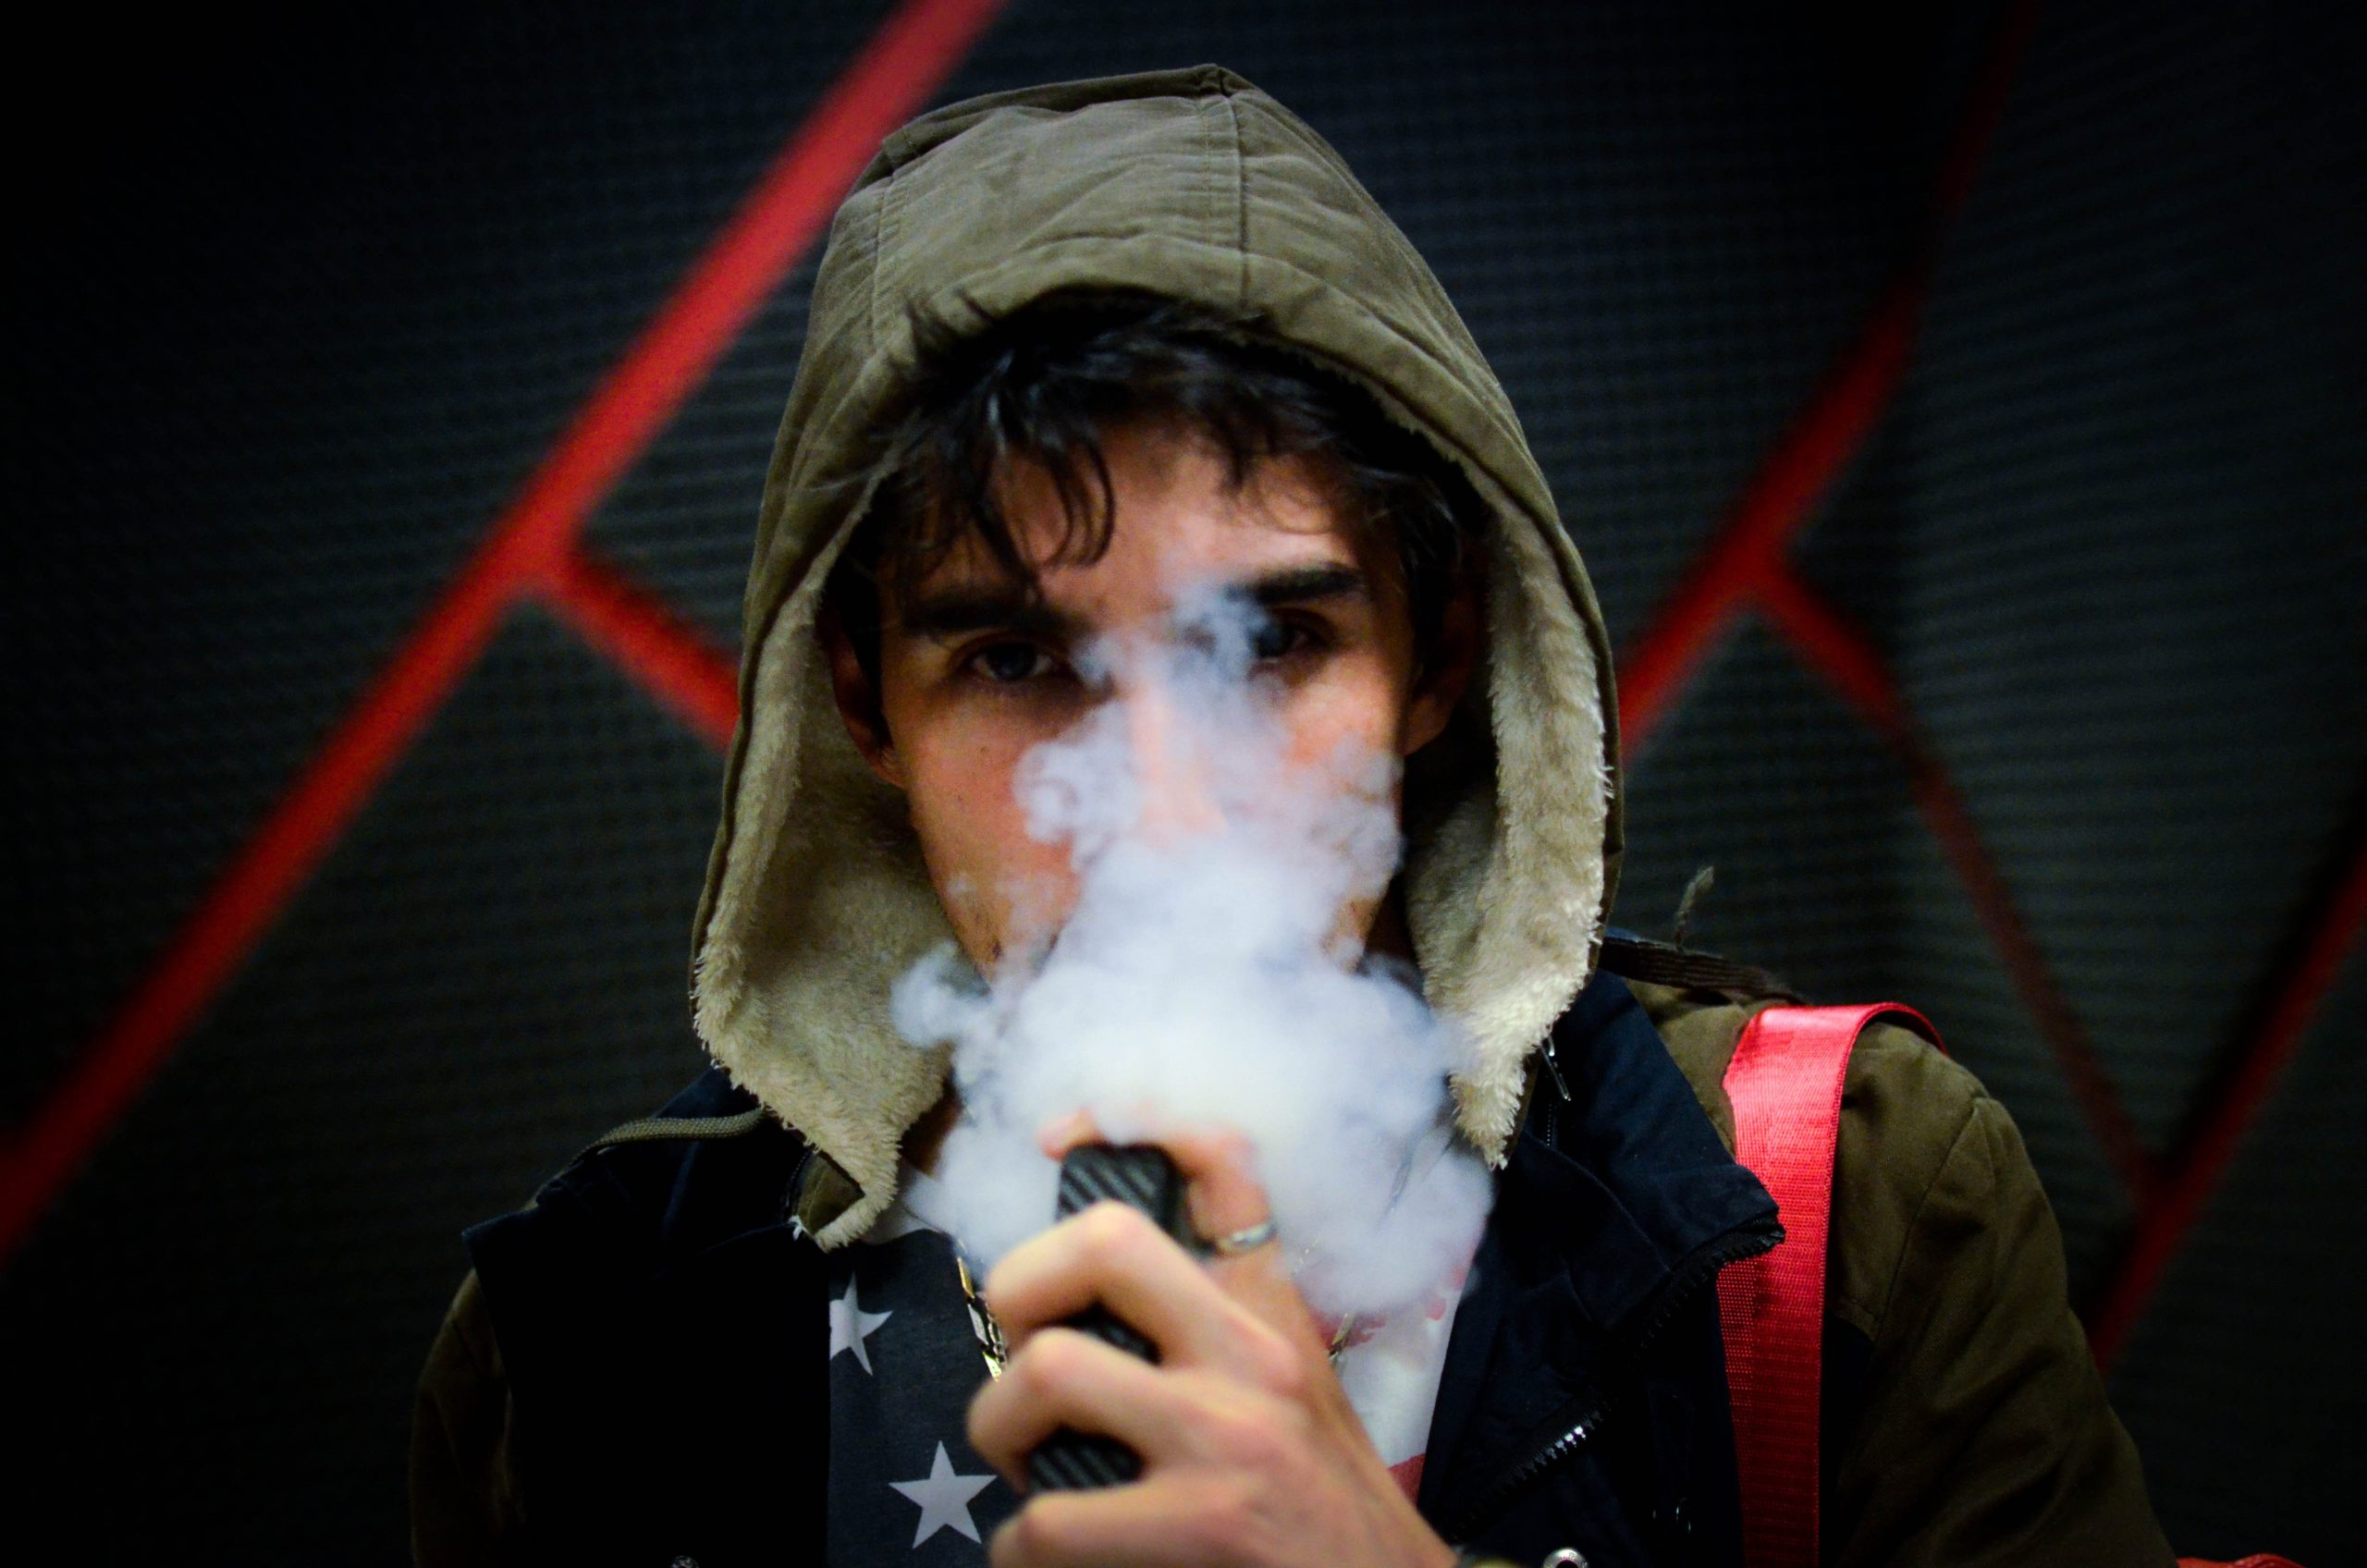 Vaping vs Smoking – Getting Started The Right Way